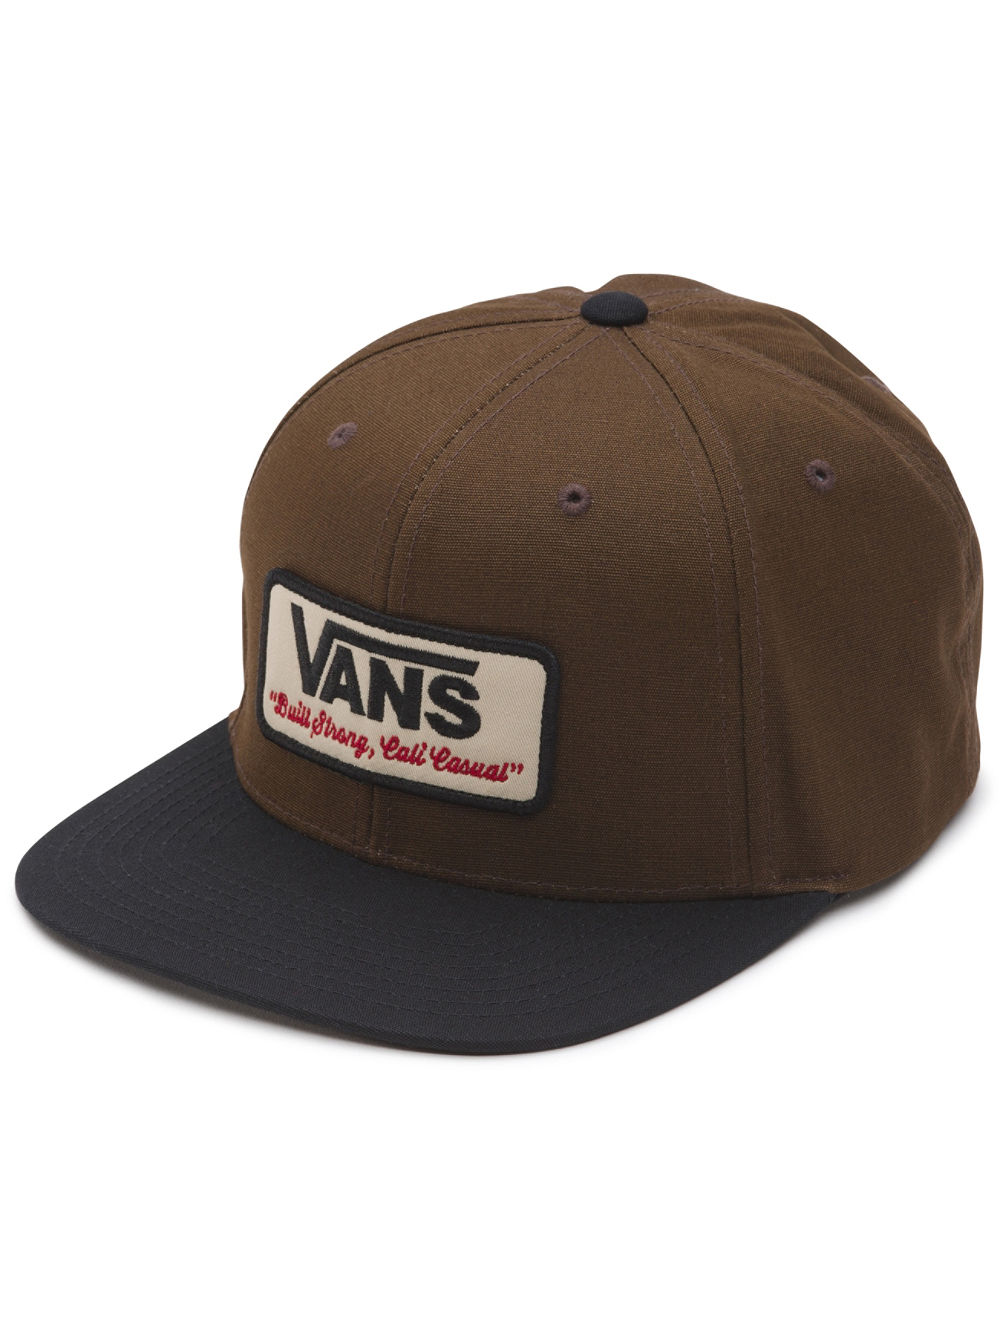 b201a6b619e Buy Vans Rowley Snapback Cap online at Blue Tomato